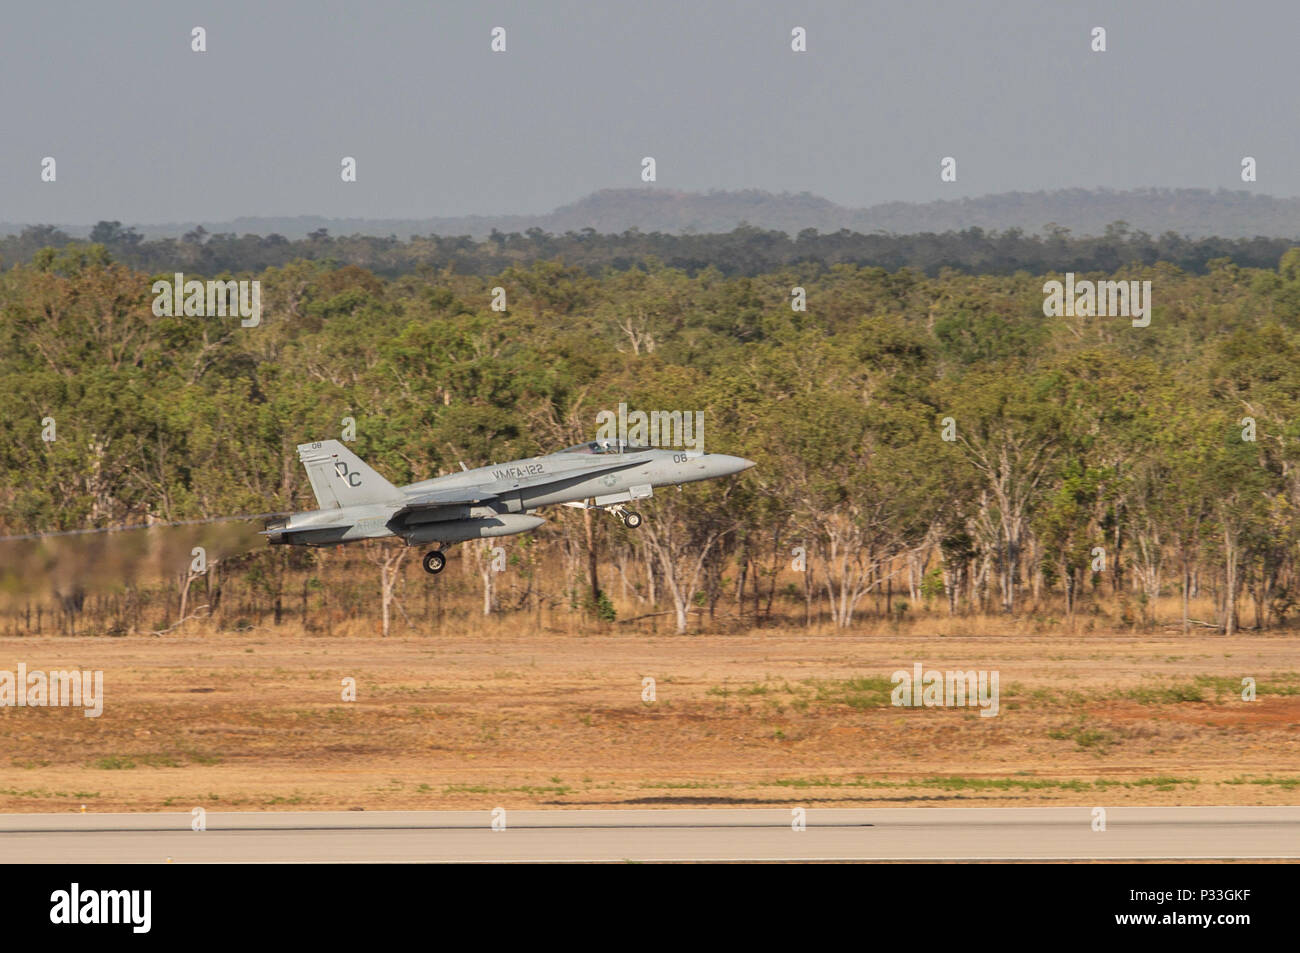 An F/A-18C Hornet with Marine Fighter Attack Squadron (VMFA) 122 takes off during Southern Frontier at Royal Australian Air Force Base Tindal, Australia, Aug. 31, 2016. VMFA-122 executed low-altitude tactics training, flying below 500 feet to evade simulated enemy radar detection or to escape enemy aircraft vectored toward friendly aircraft. By integrating low-altitude tactics into the three week unit level training, pilots gained their final qualifications during Southern Frontier, strengthening the squadrons overall combat readiness. (U.S. Marine Corps photo by Cpl. Nicole Zurbrugg) - Stock Image